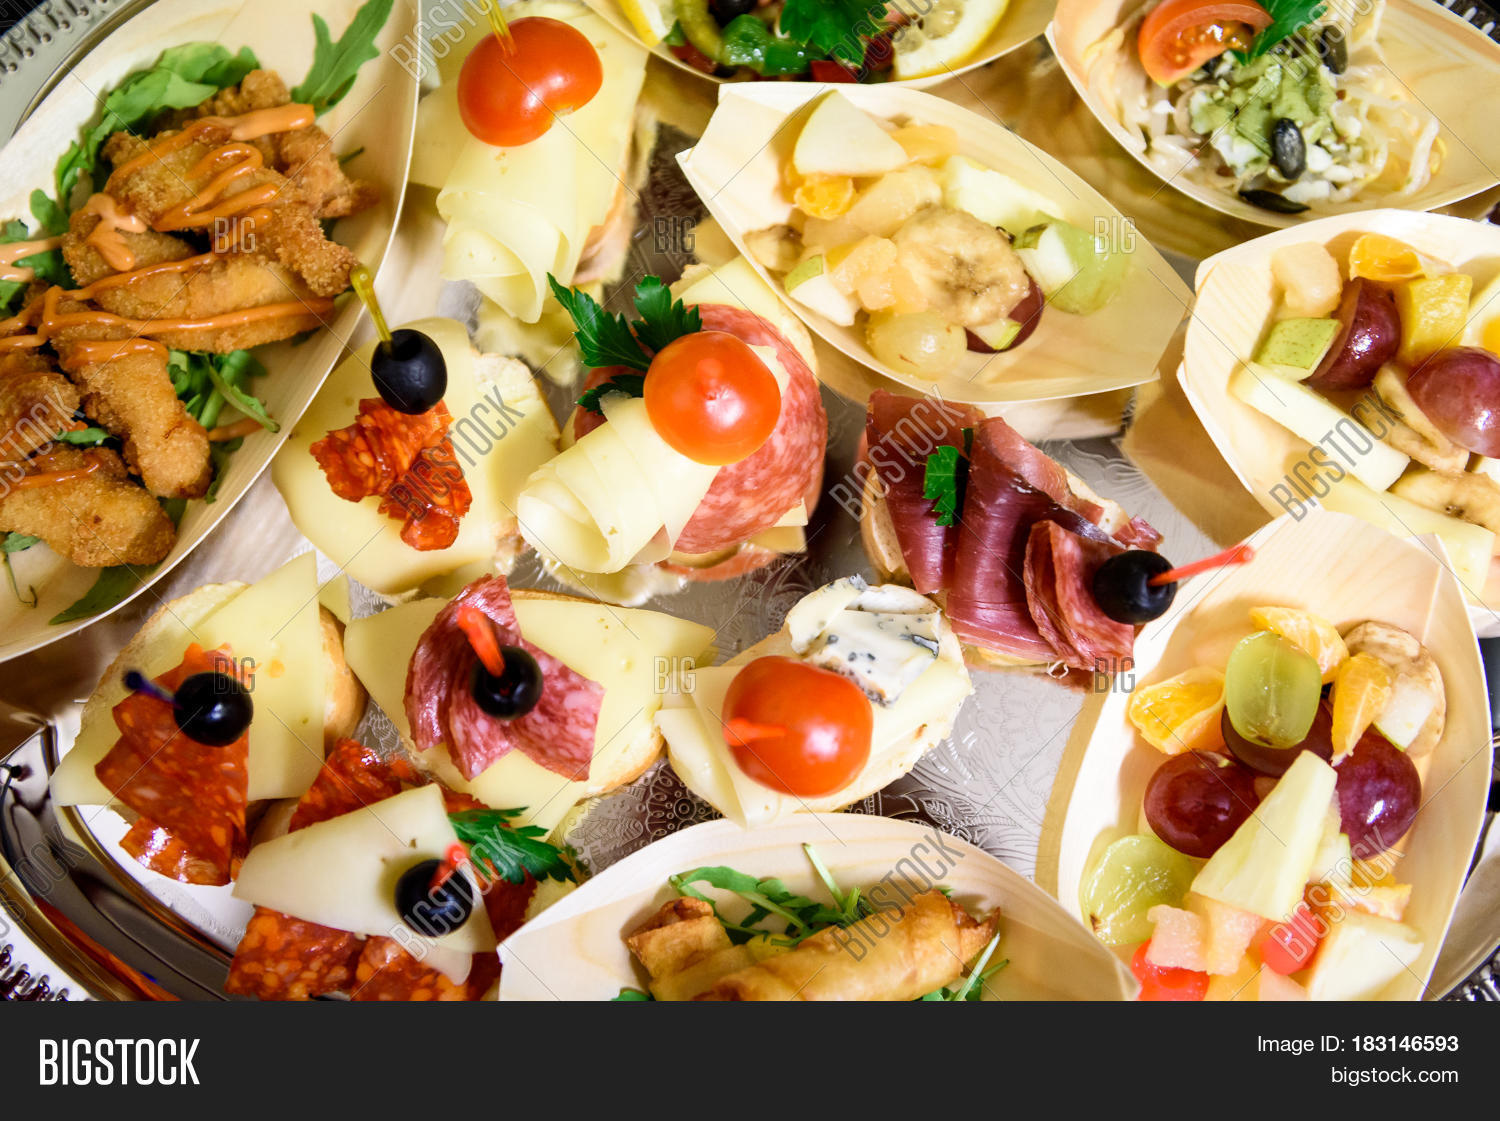 Home made canapes small sandwiches appetizers stock photo for Canape wraps